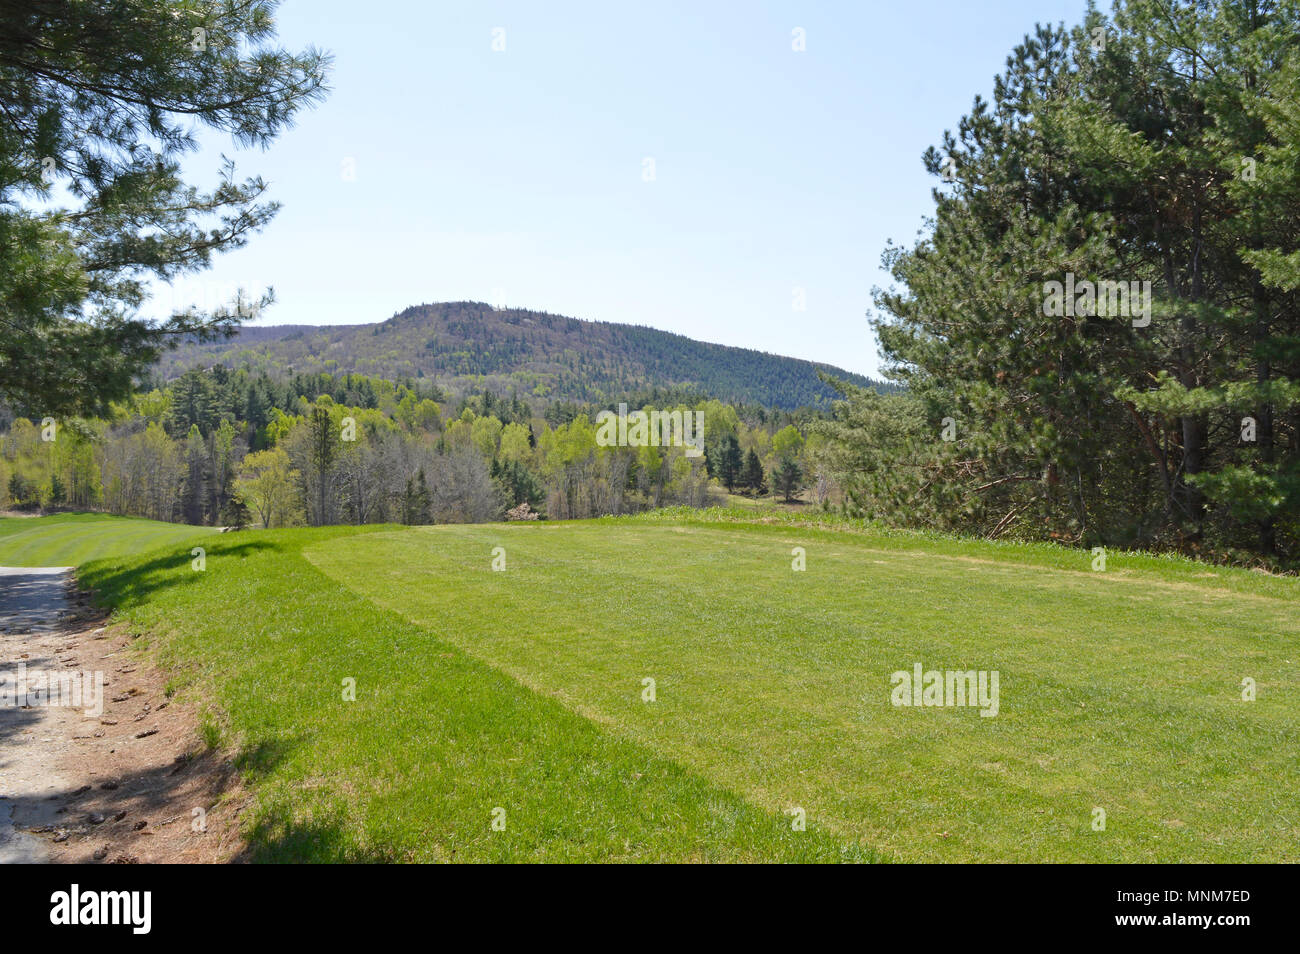 View from the tee  at beautiful Golf course in Lac Ste. Marie, Quebec Canada. - Stock Image